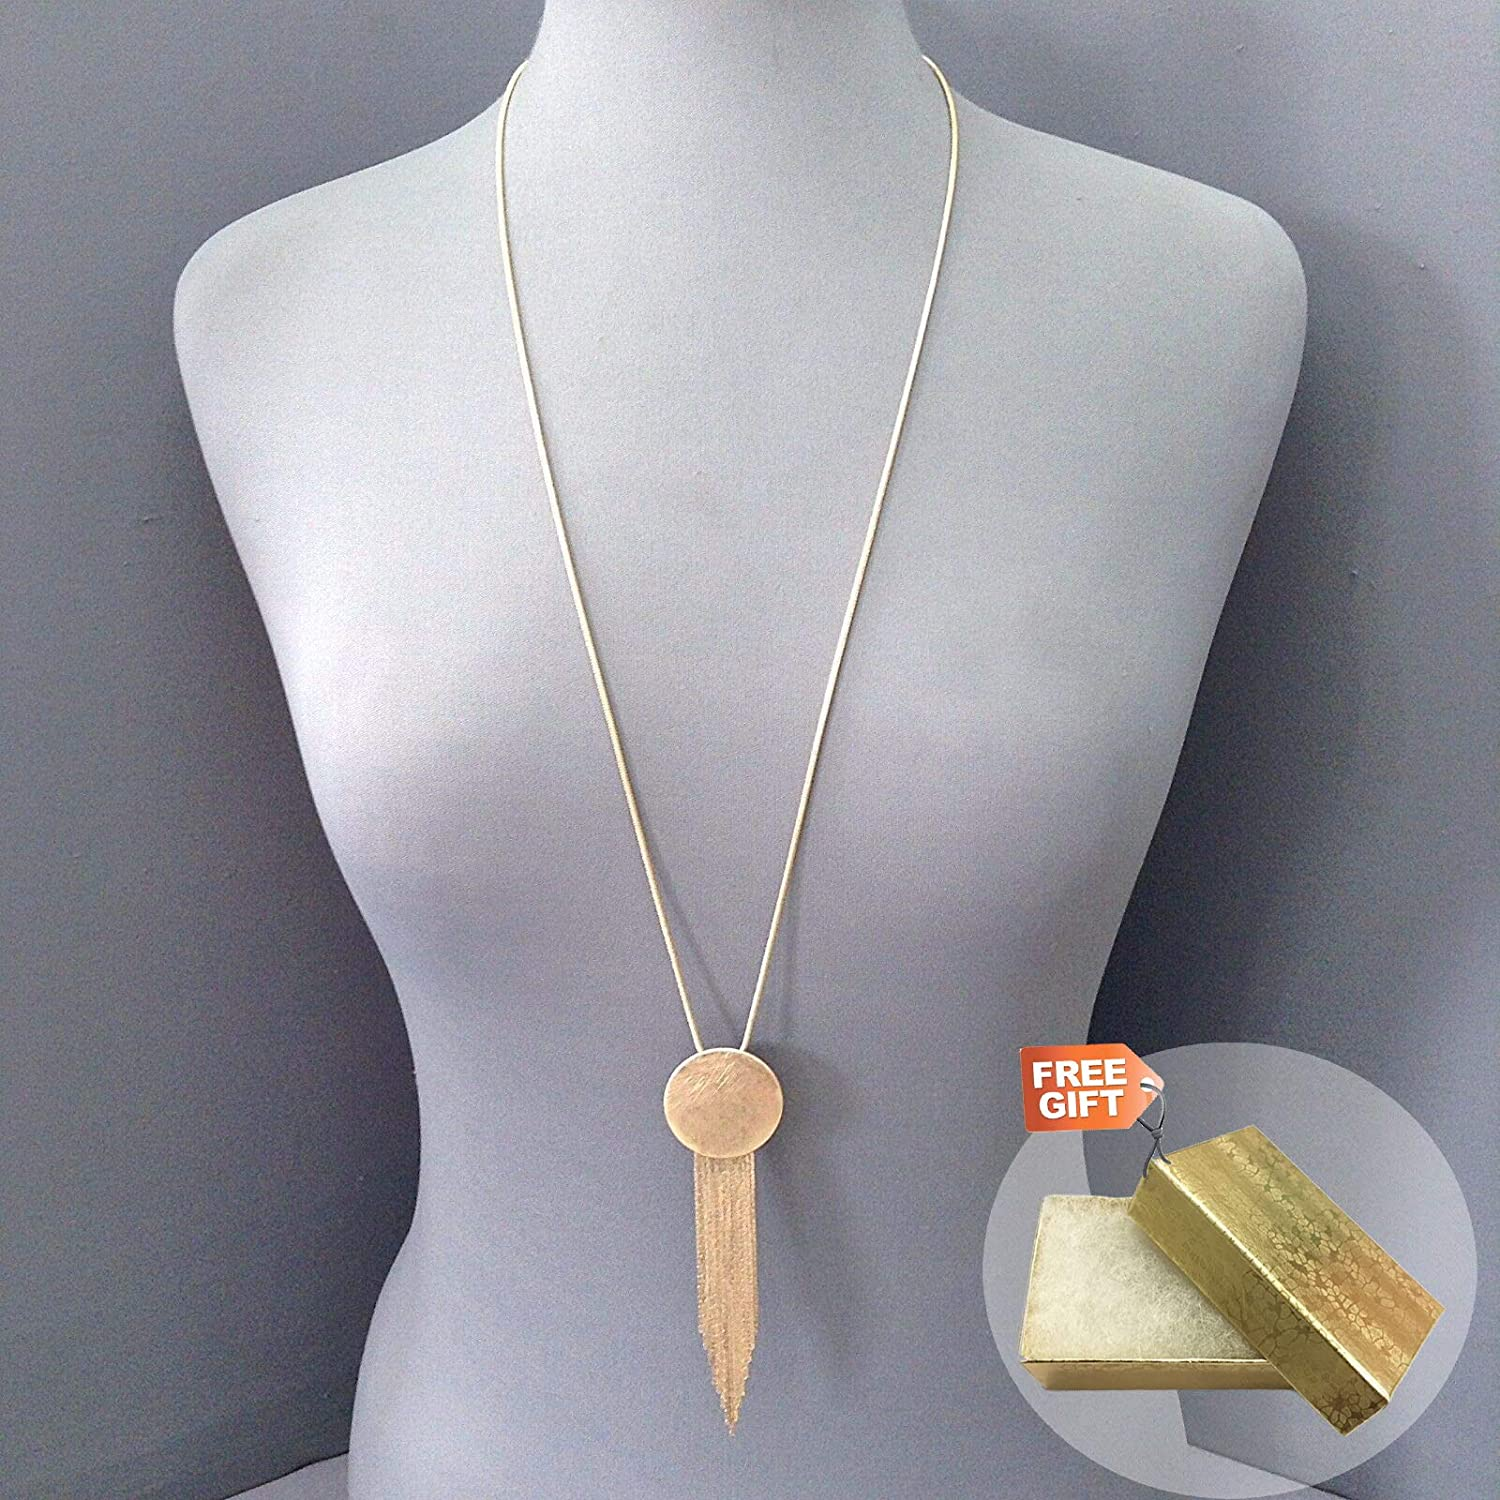 Gold Cotton Filled Gift Box for Free Snakeskin Chain Gold Color Scratched Finished Circle Tassel Pendant Necklace